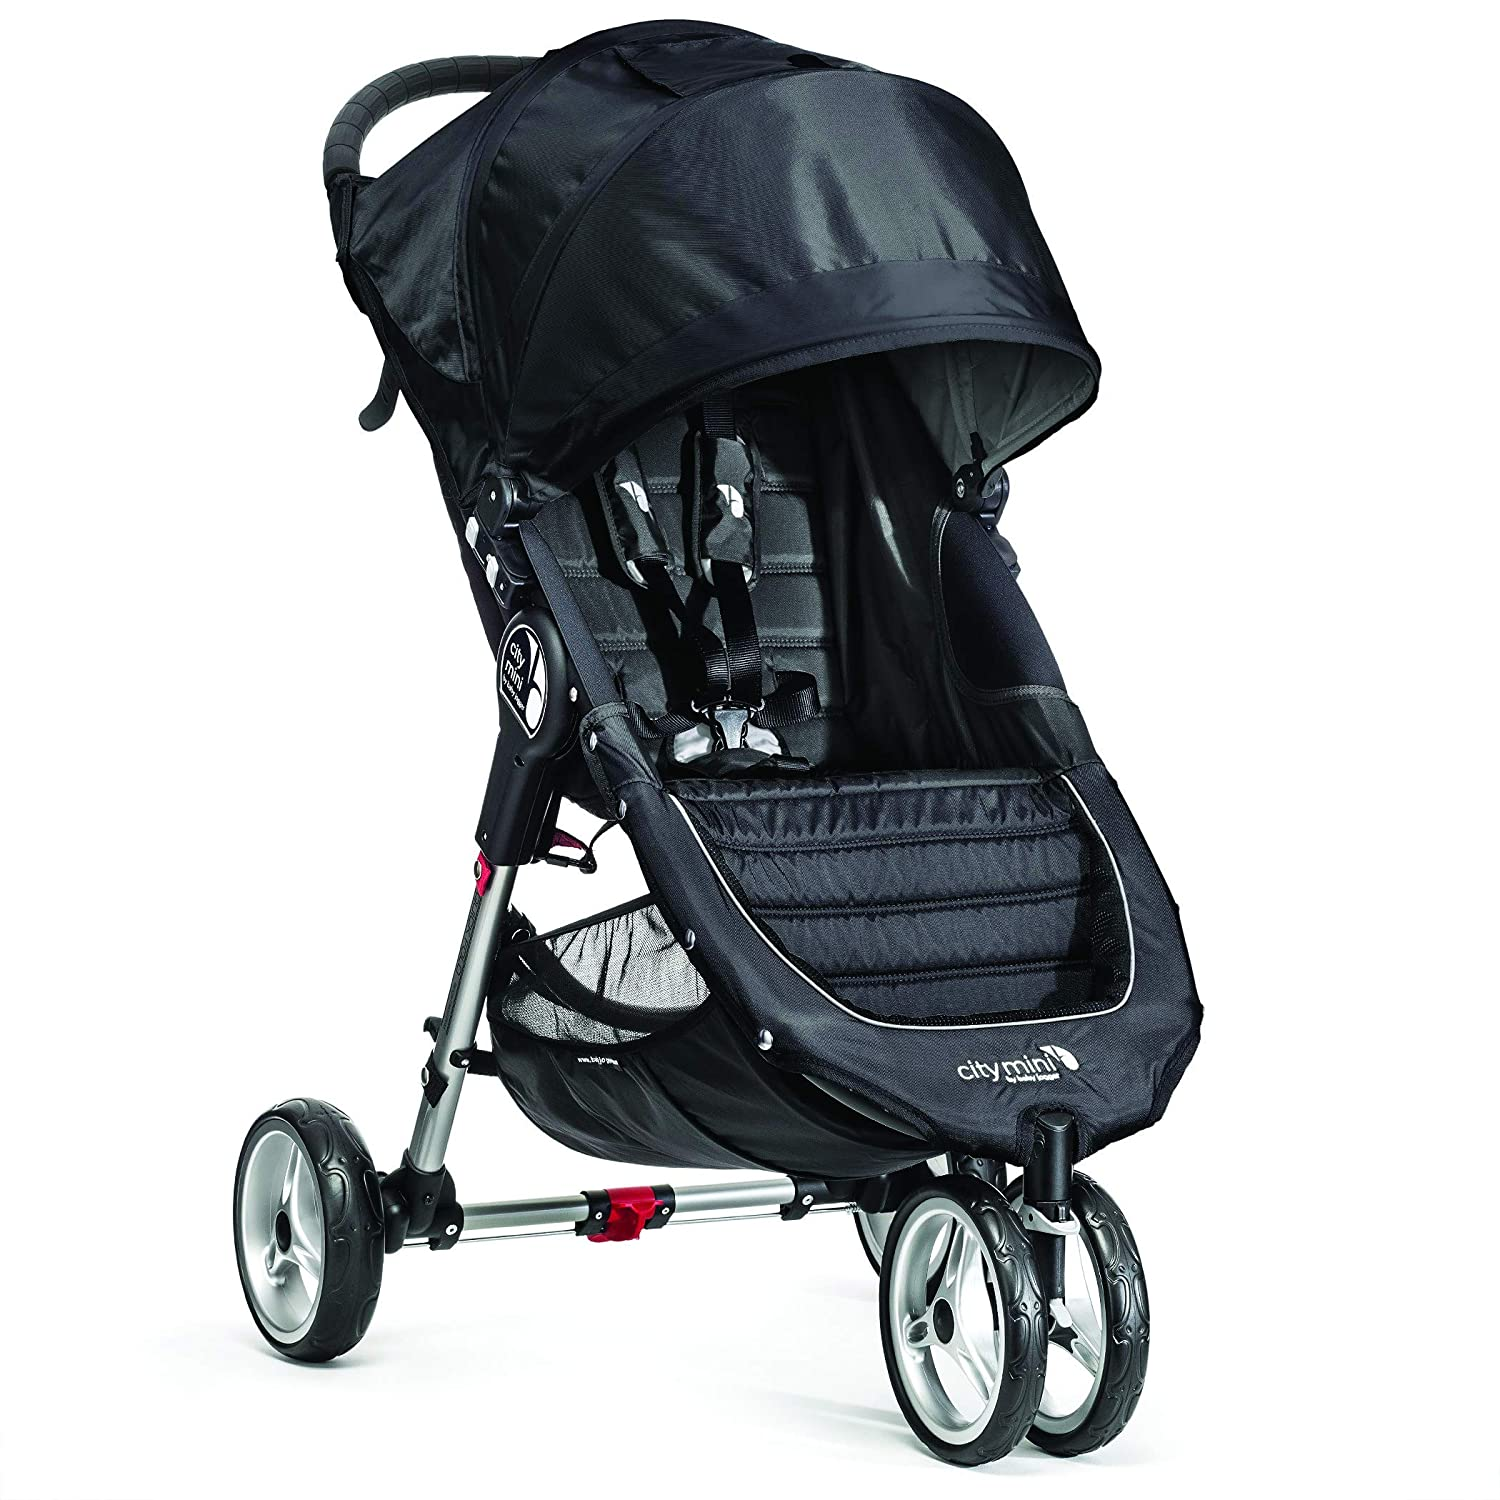 Top 7 Best Lightweight Strollers Reviews in 2019 5